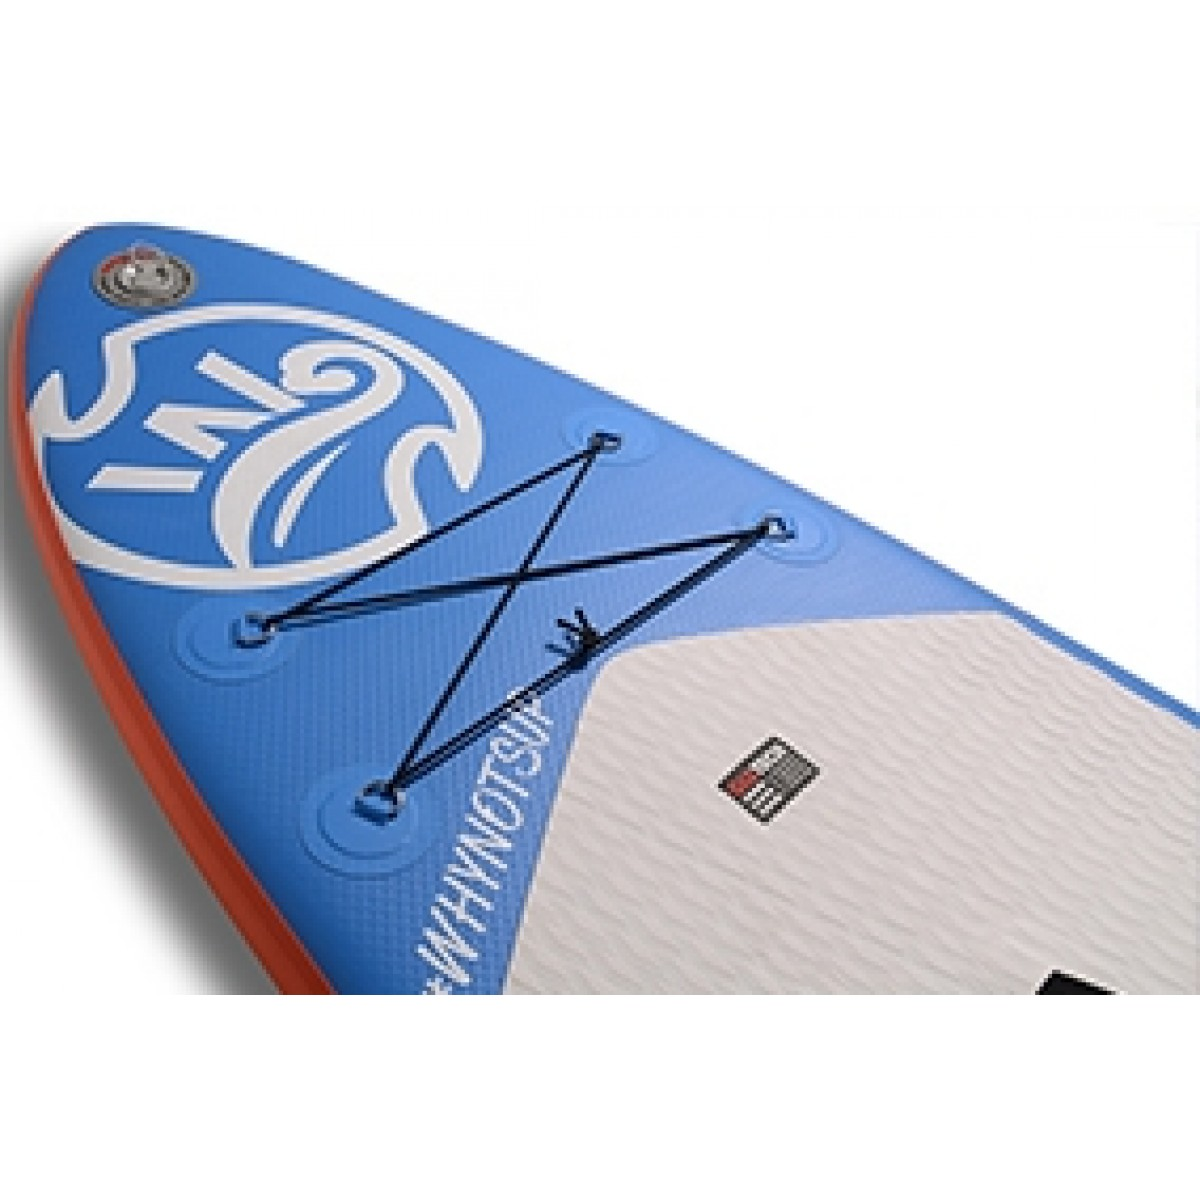 Why-not-sup Air drive -11,2